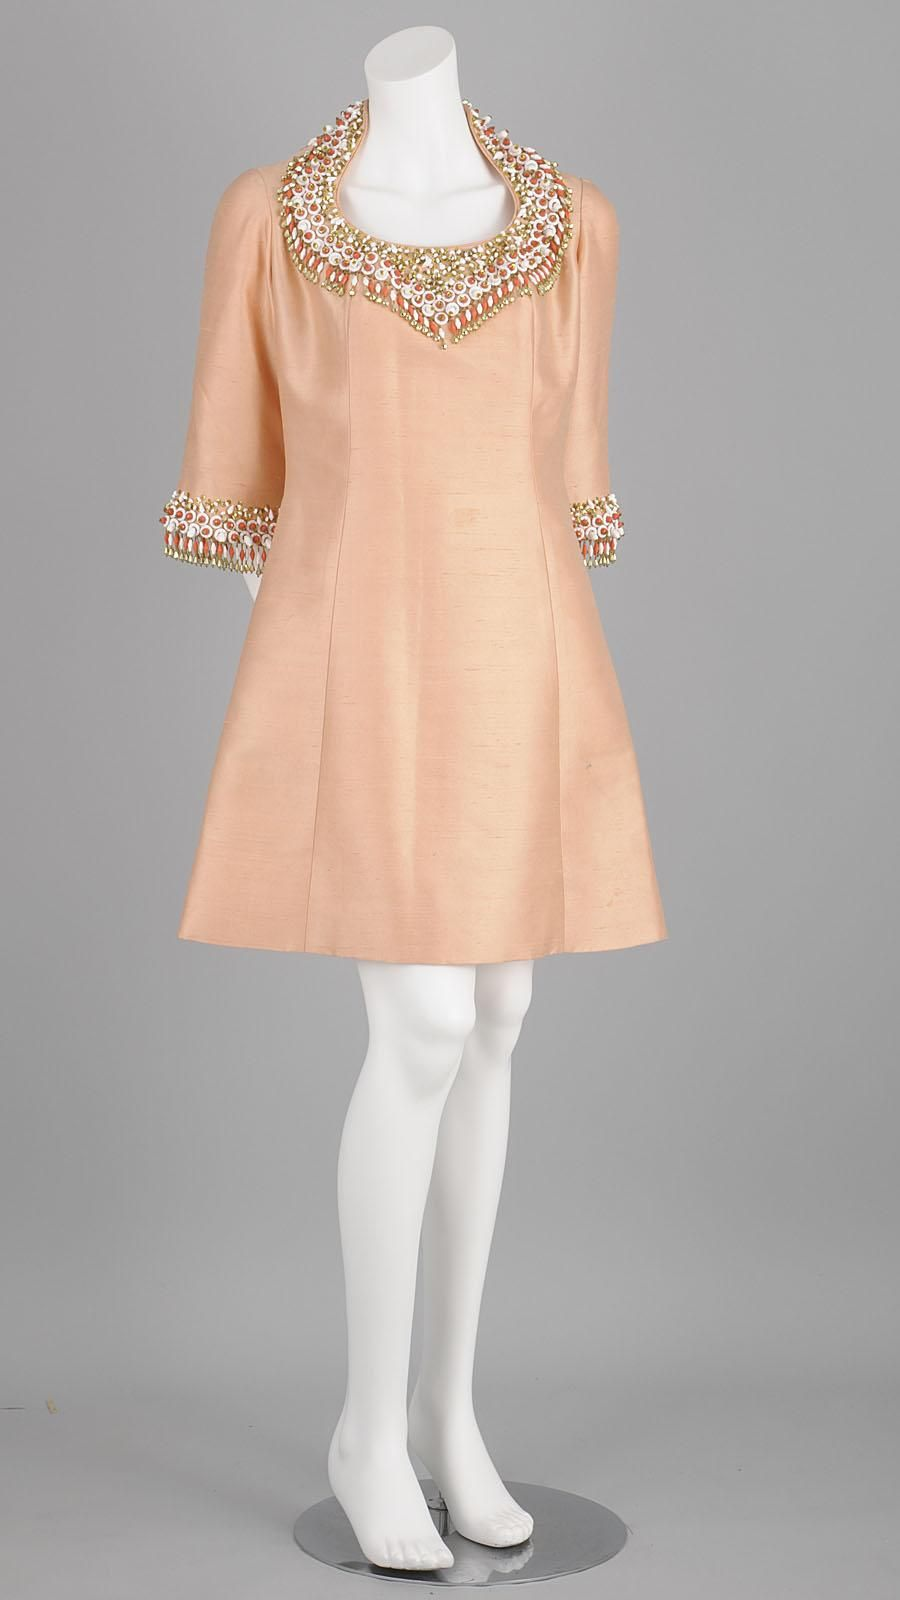 S cocktail dress in peach shantung silk heavily embellished